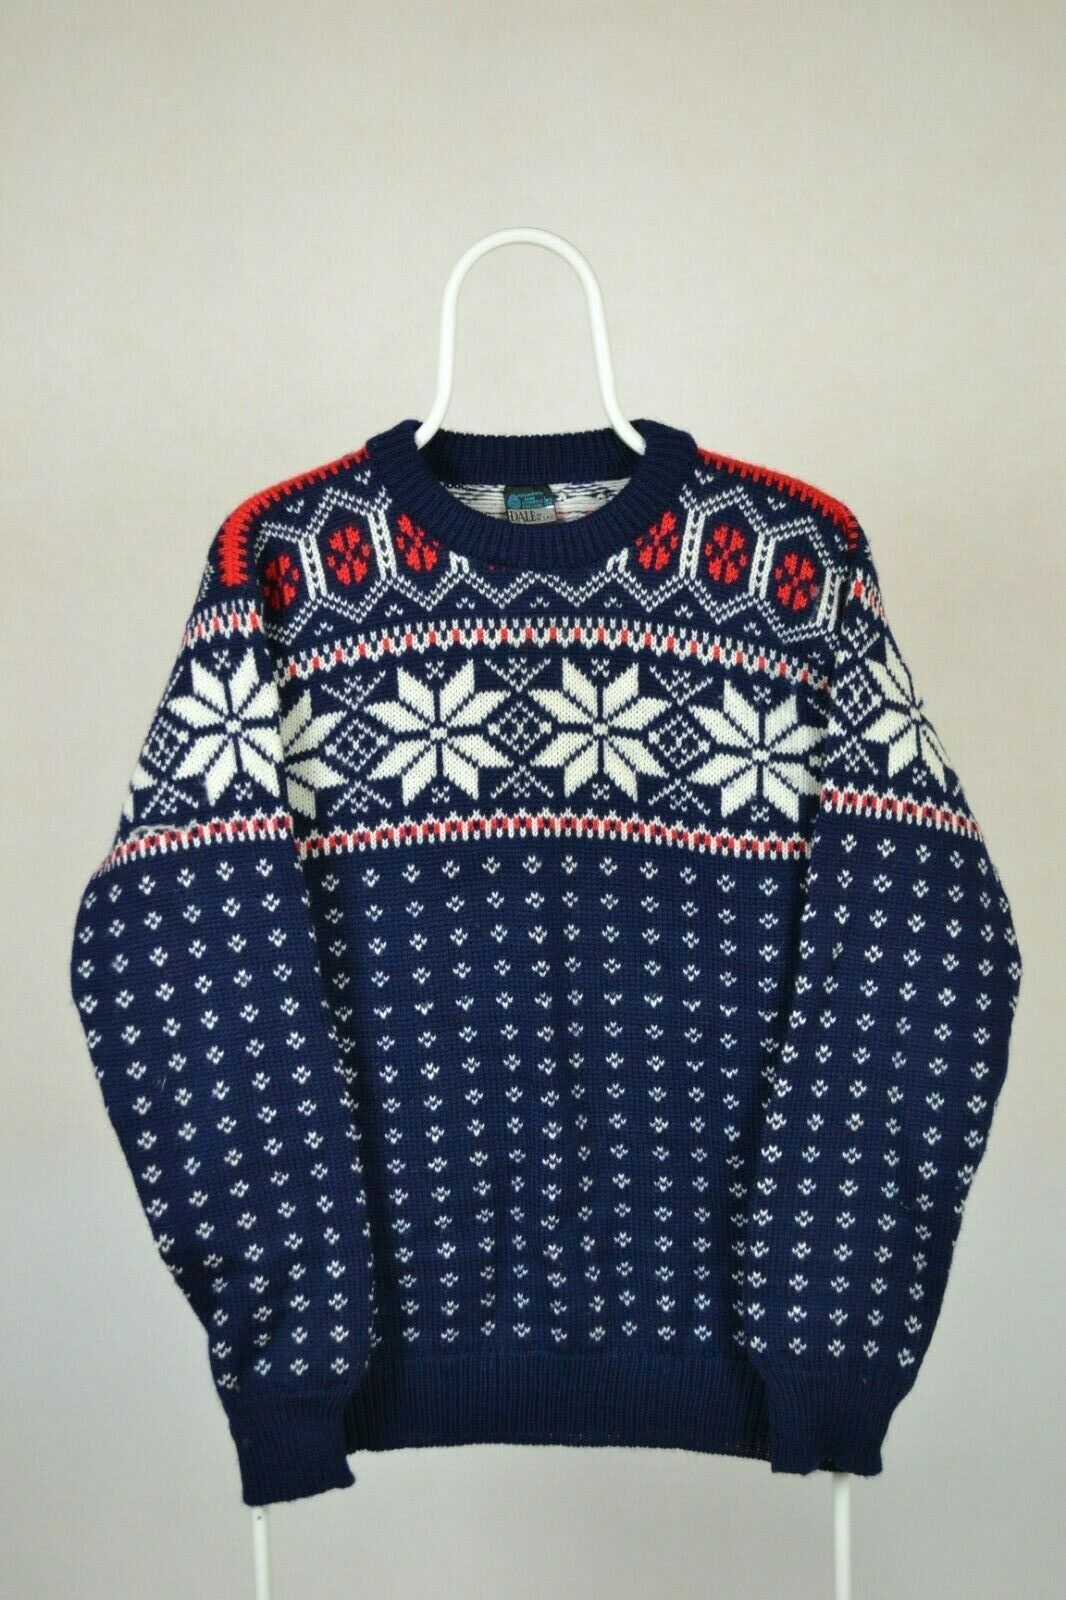 DALE OF NORWAY Hommes Jumper 100% Pure nouveau Wool chandail Taille 52